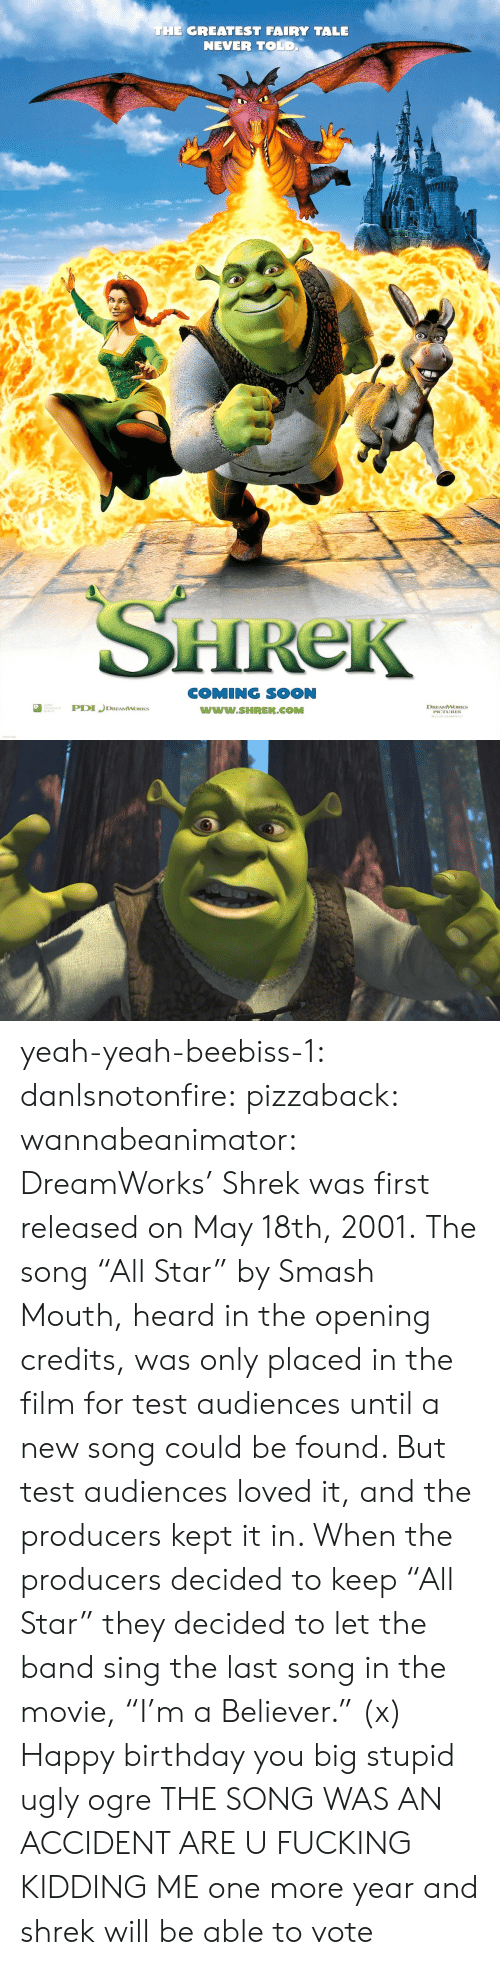 "Imdb: THE GREATEST FAIRY TALE  NEVER TOLD  HReK  COMING SOON  www.SHREK.COMM  ted  DREAMWORKS yeah-yeah-beebiss-1: danlsnotonfire:  pizzaback:   wannabeanimator:   DreamWorks' Shrek was first released on May 18th, 2001. The song ""All Star"" by Smash Mouth, heard in the opening credits, was only placed in the film for test audiences until a new song could be found. But test audiences loved it, and the producers kept it in. When the producers decided to keep ""All Star"" they decided to let the band sing the last song in the movie, ""I'm a Believer."" (x)   Happy birthday you big stupid ugly ogre   THE SONG WAS AN ACCIDENT ARE U FUCKING KIDDING ME   one more year and shrek will be able to vote"